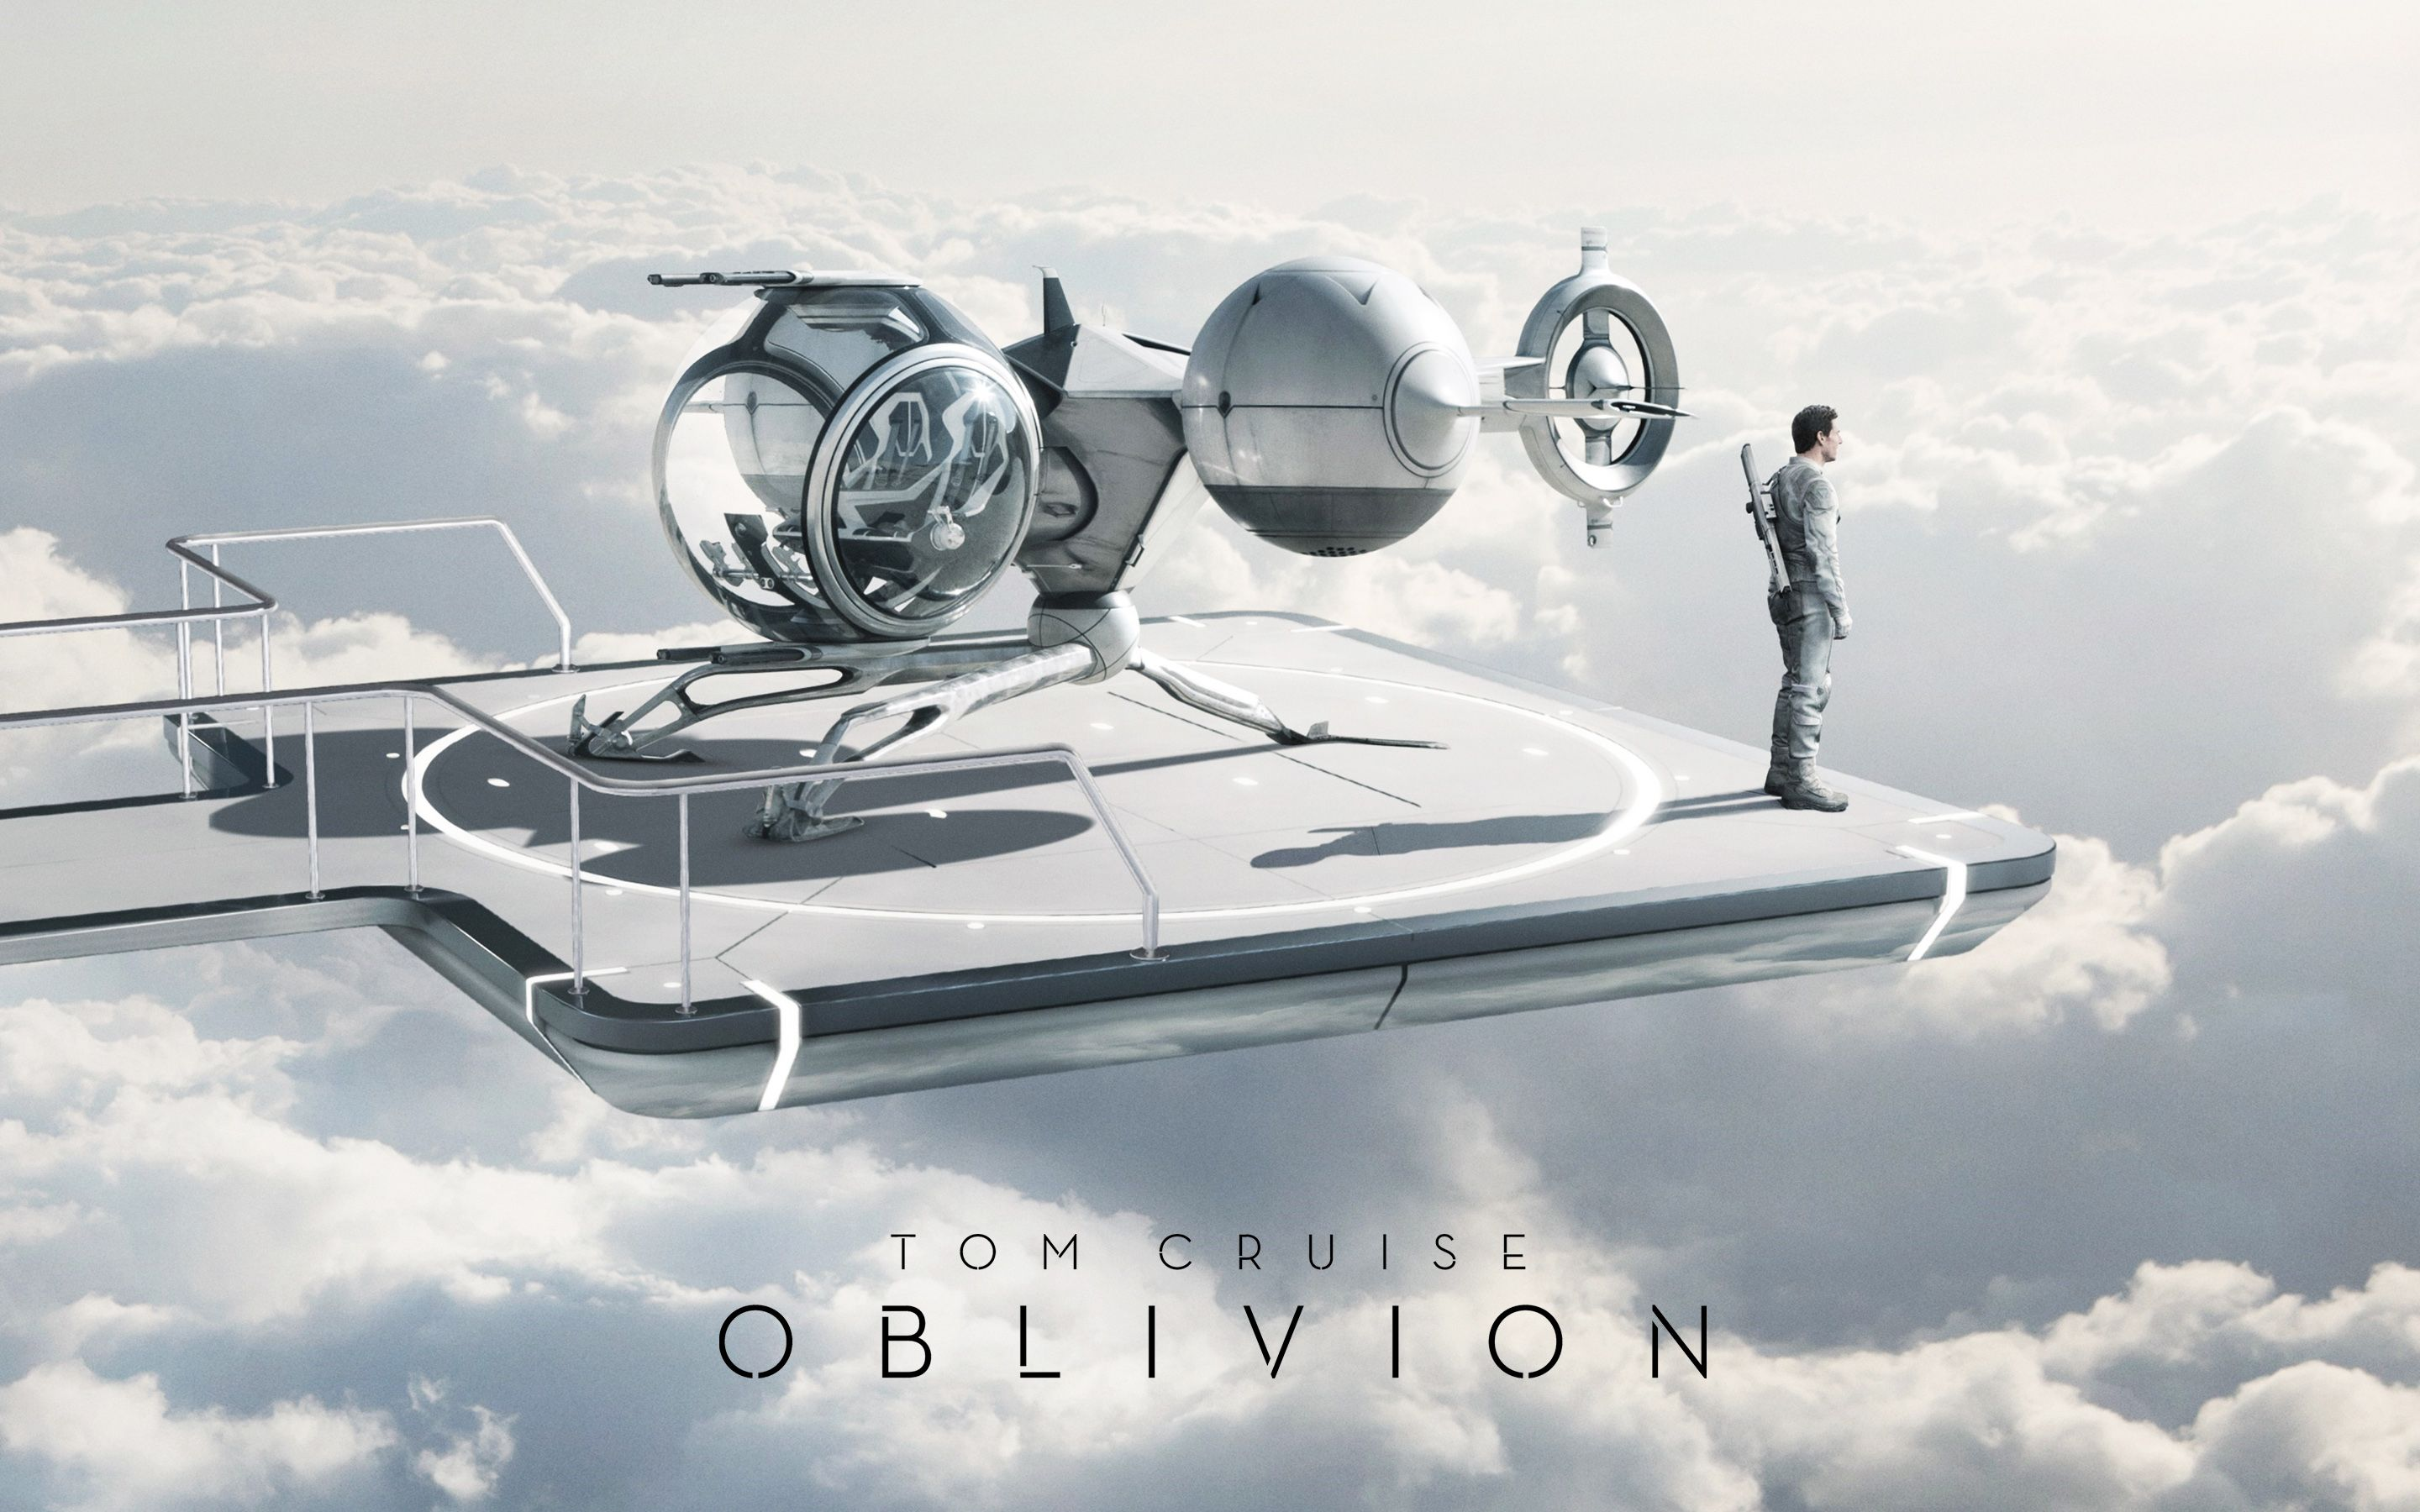 Tom Cruise Oblivion Movie Wallpapers Hd Wallpapers Oblivion Movie Oblivion Tom Cruise